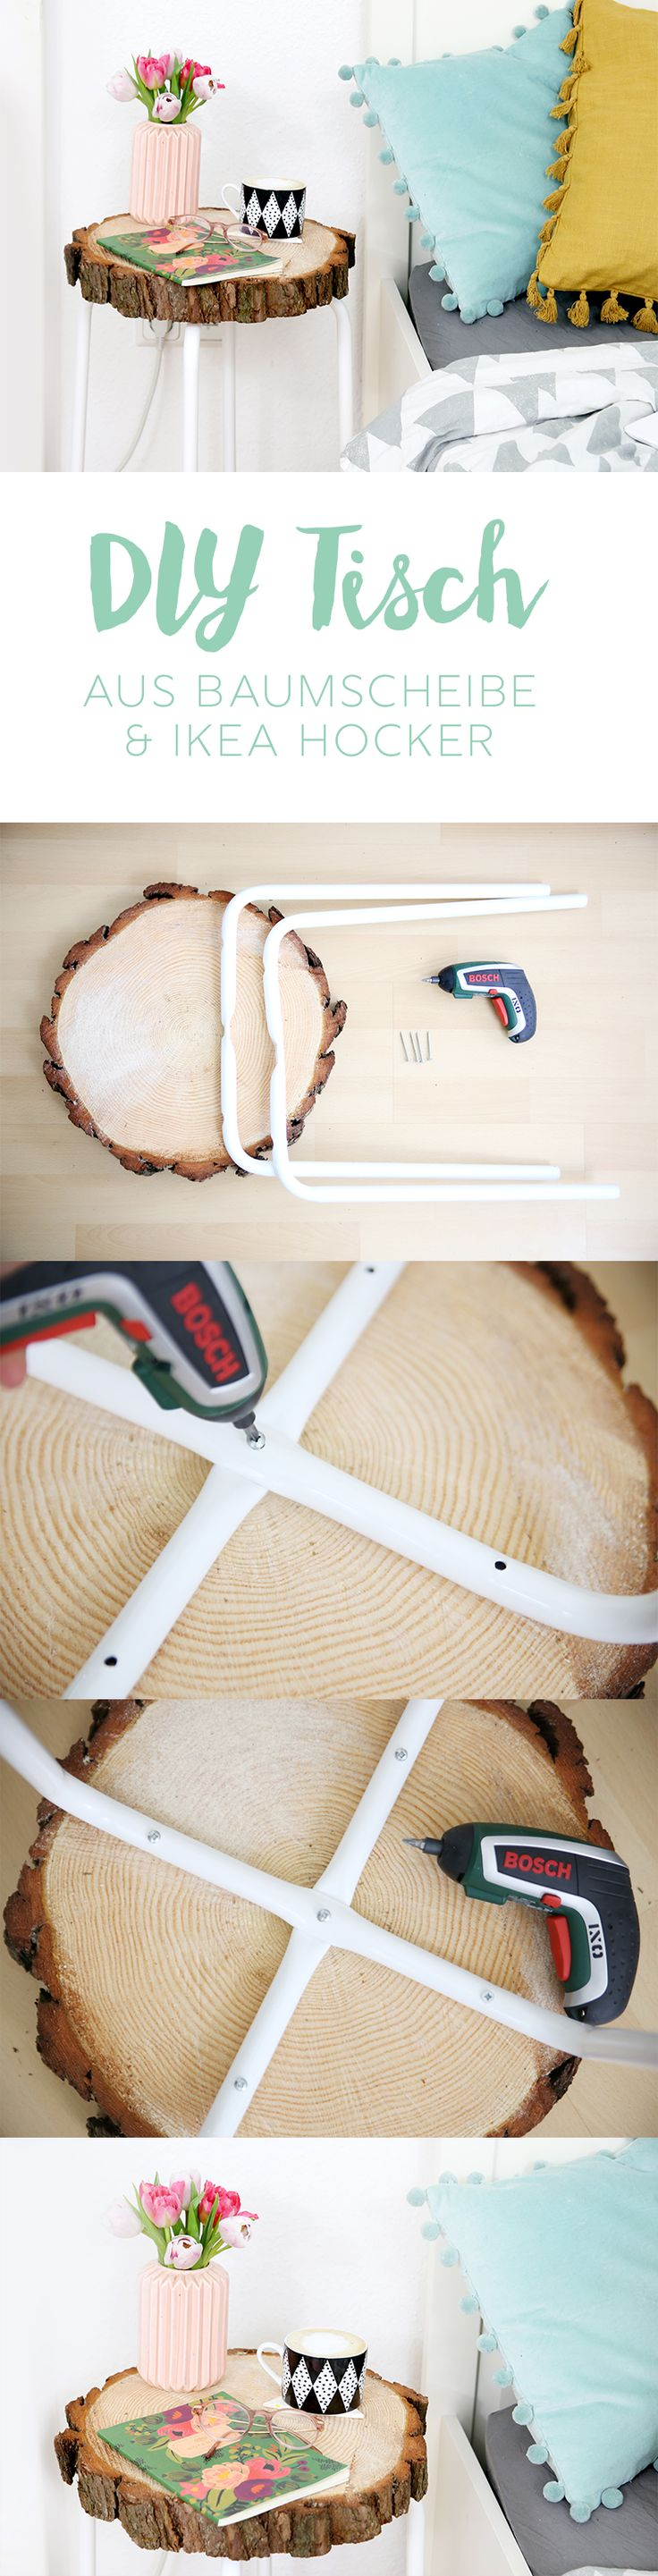 {DIY} side table made of tree disc and Ikea stool